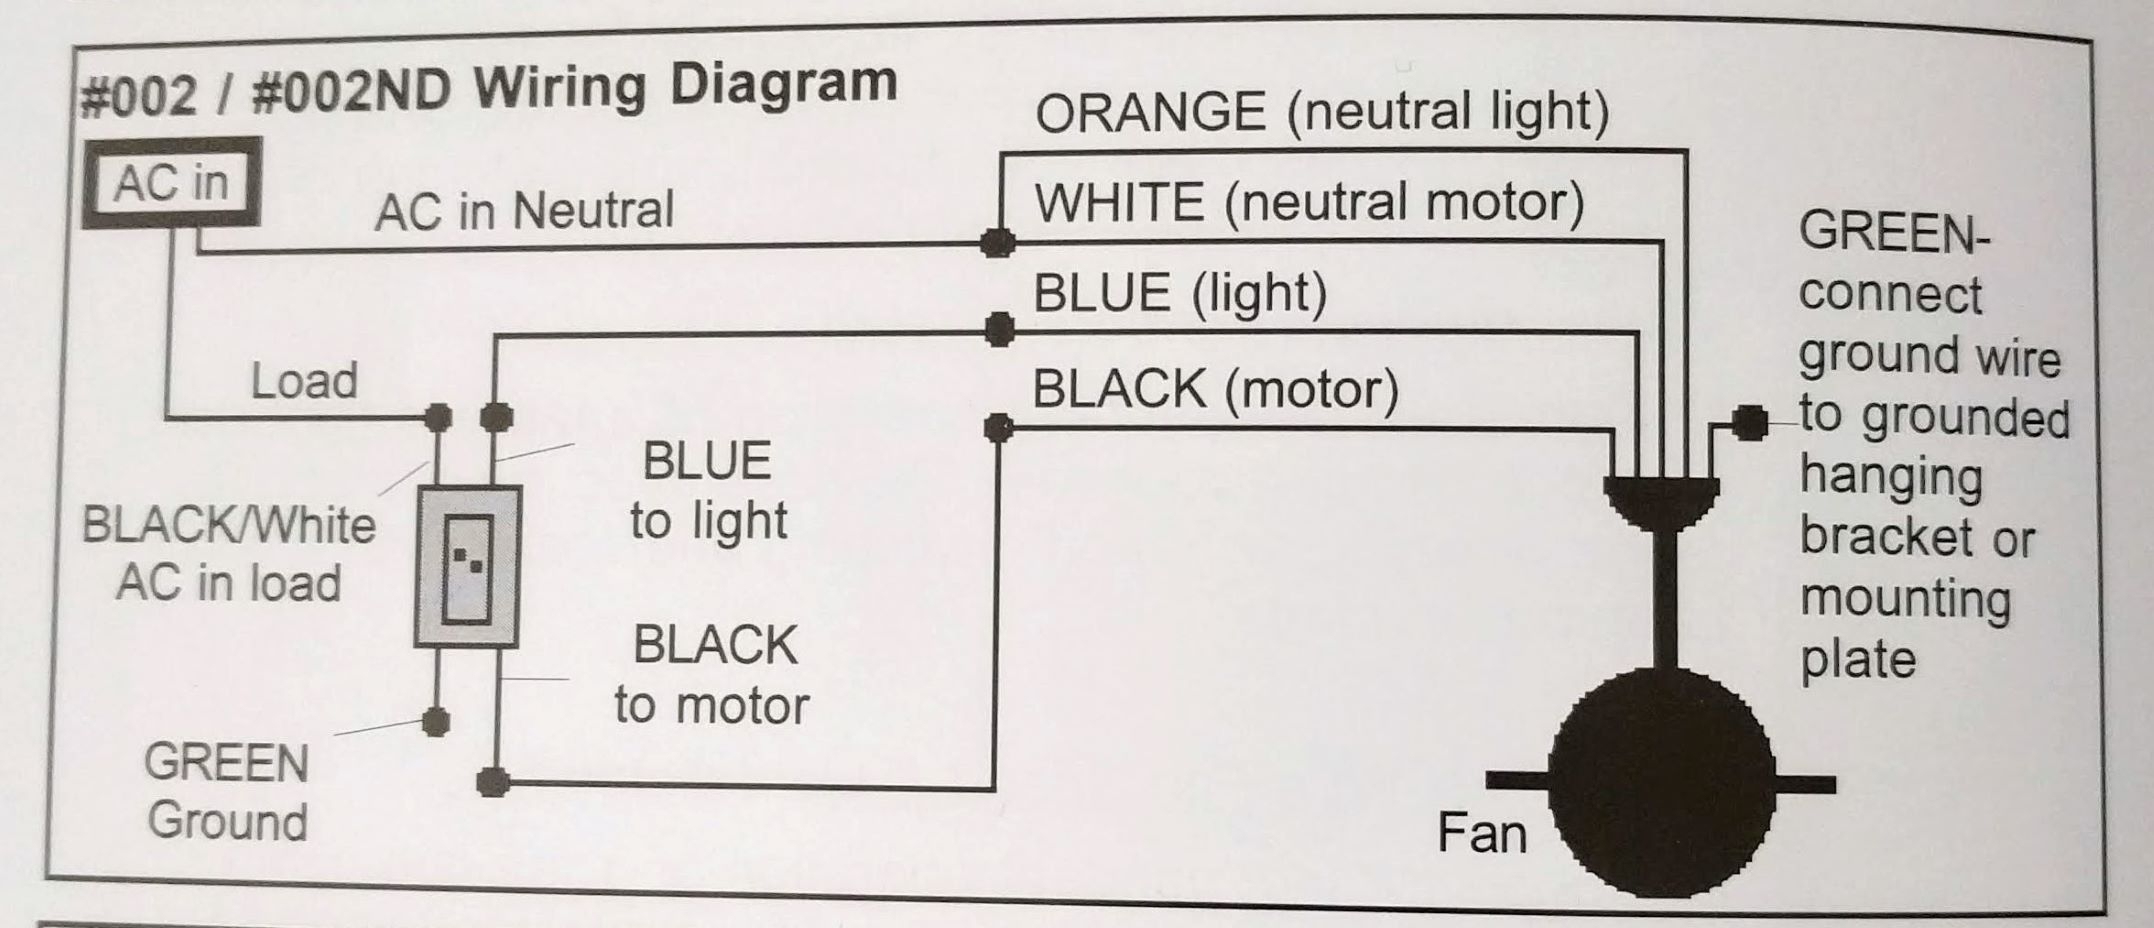 Ceiling Fan Wiring Diagram With Red Wire  U2022 Cabinet Ideas